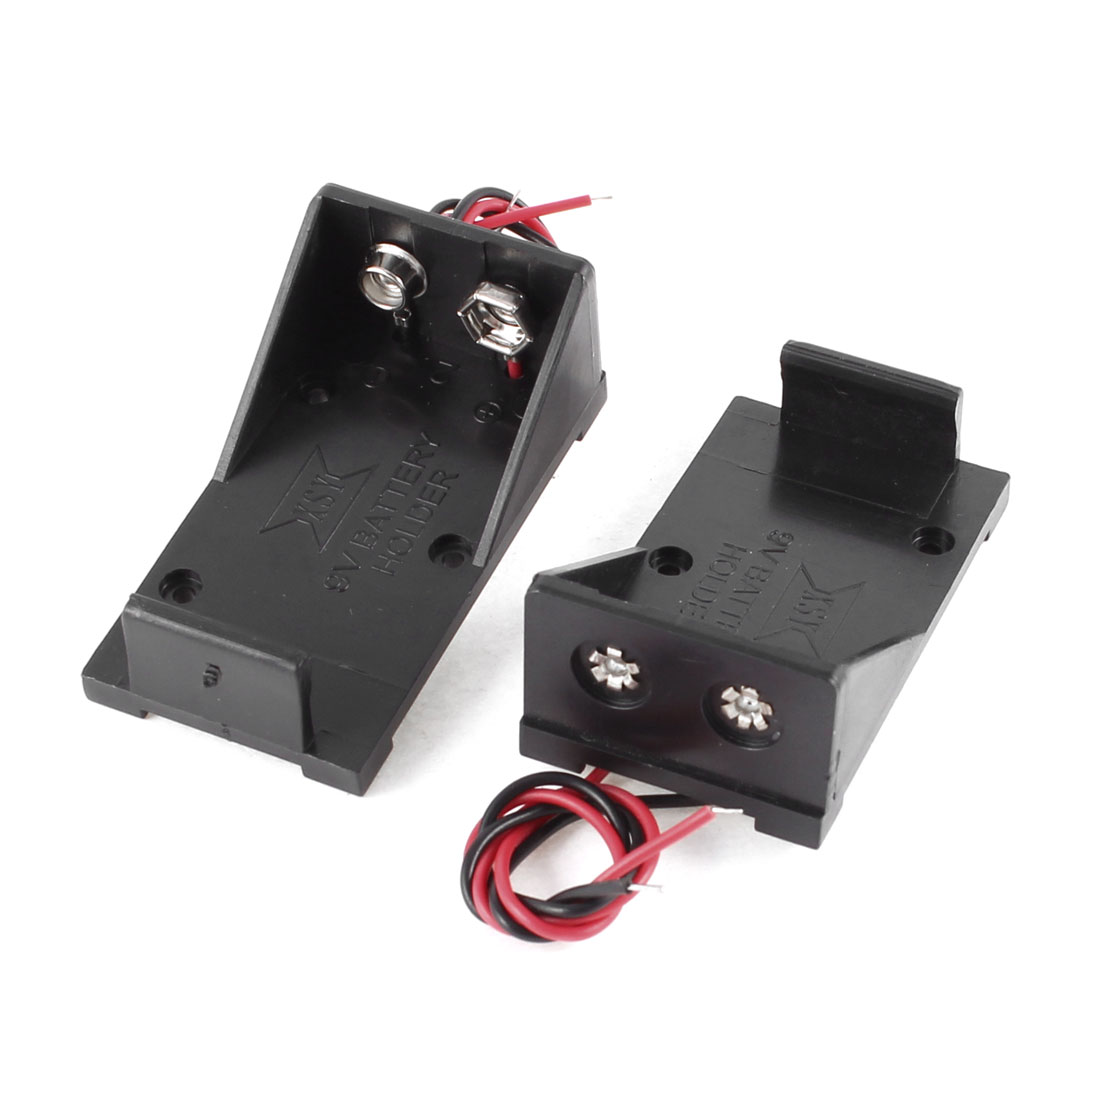 2 Pcs Black Plastic 9V Cells Battery Holder Case Box w Wired Leads